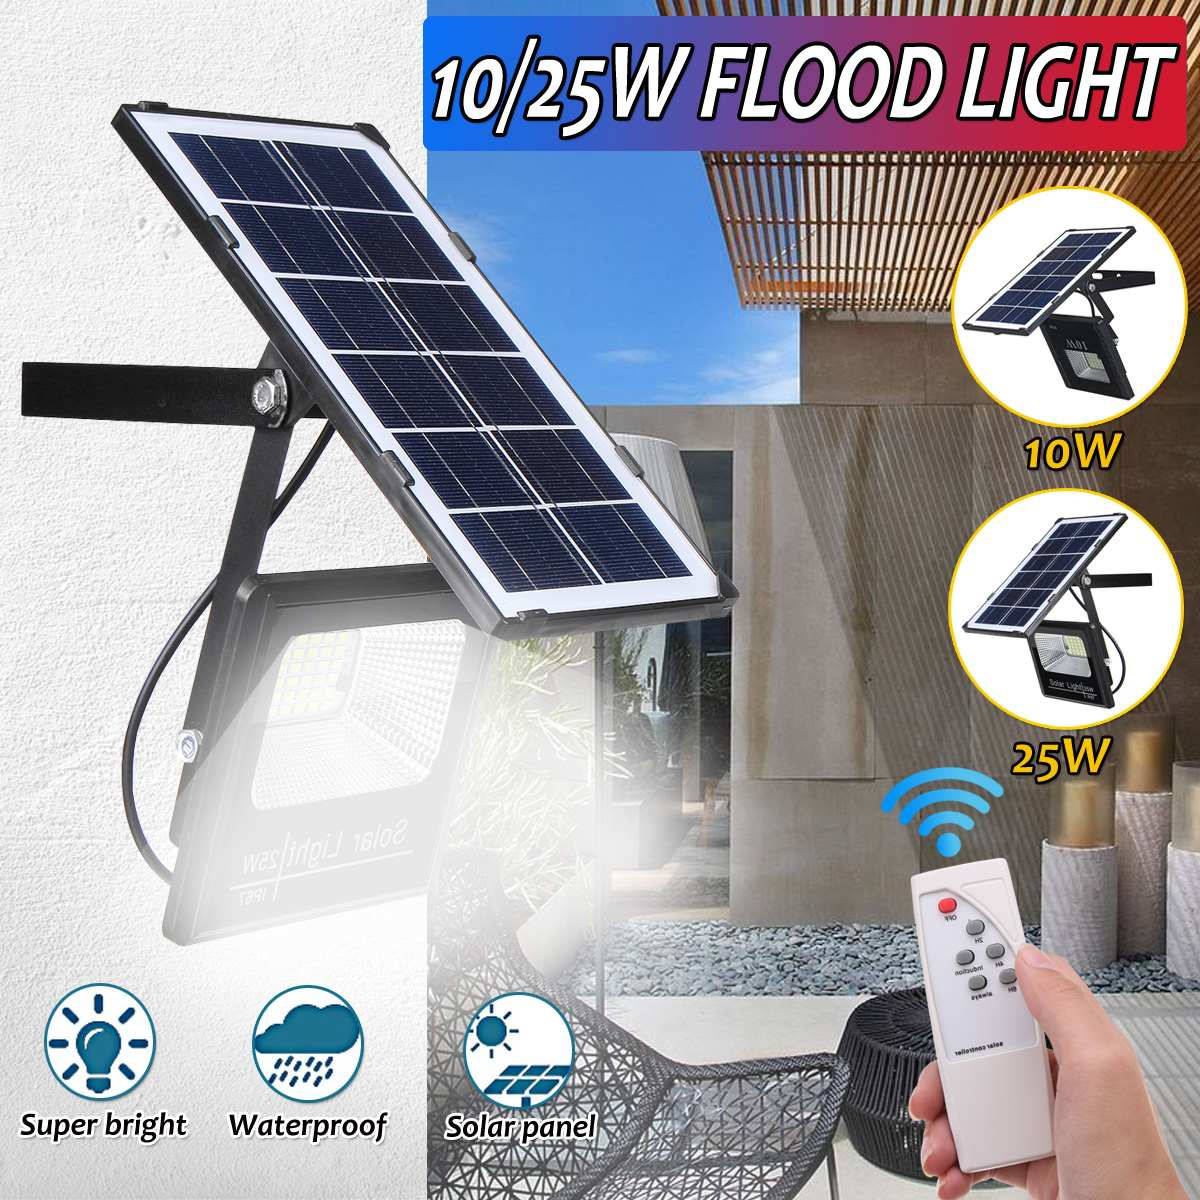 Solar Floodlight Led Portable Spotlight Floodlight 10/25W Outdoor Street  Garden Light Waterproof Wall Lamp With Remote Control